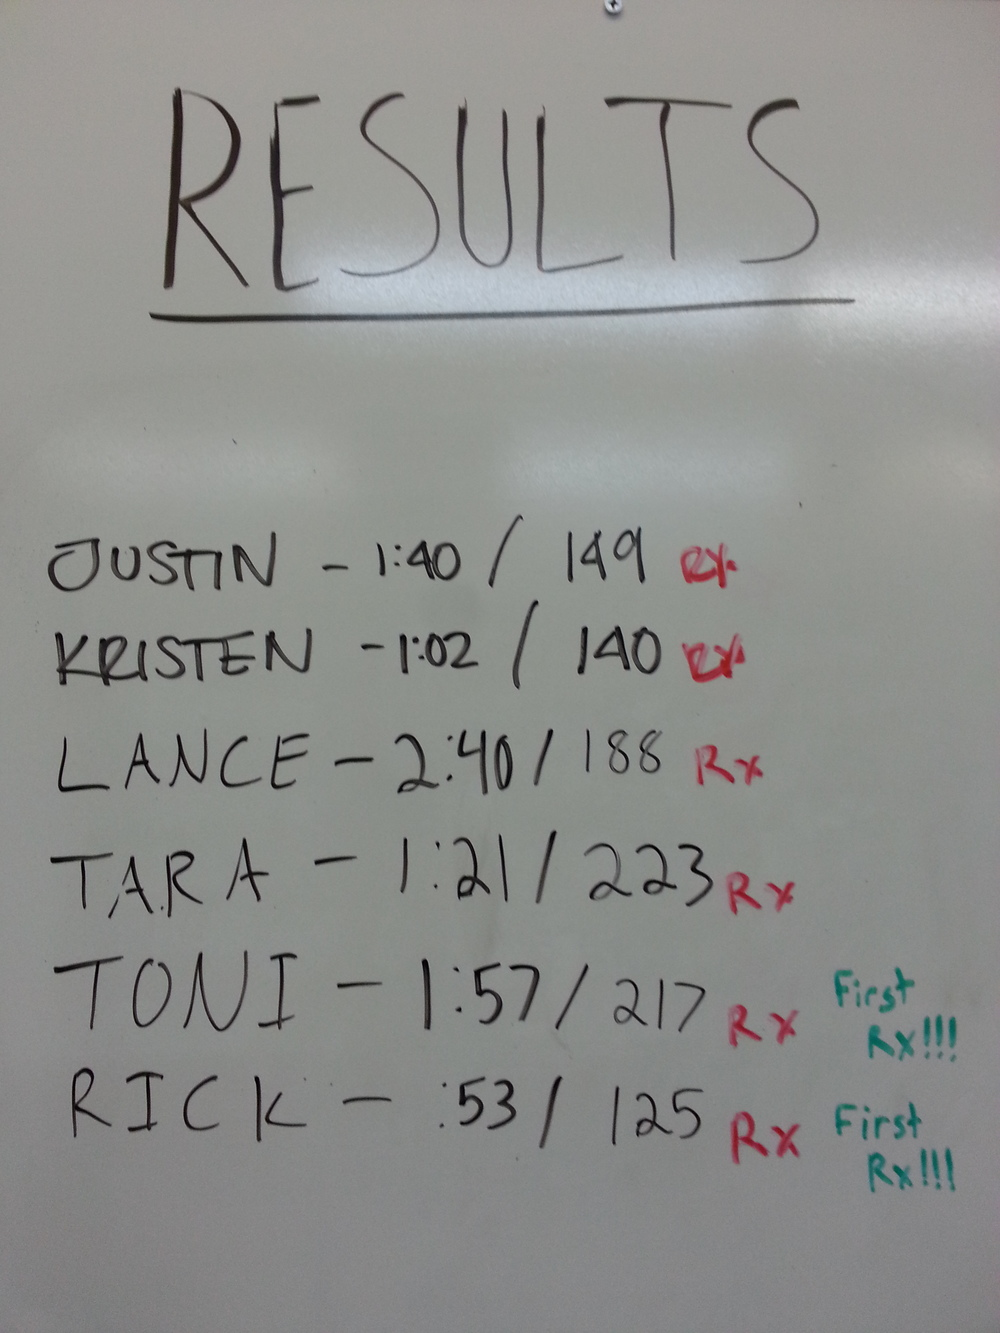 Results from 5.21